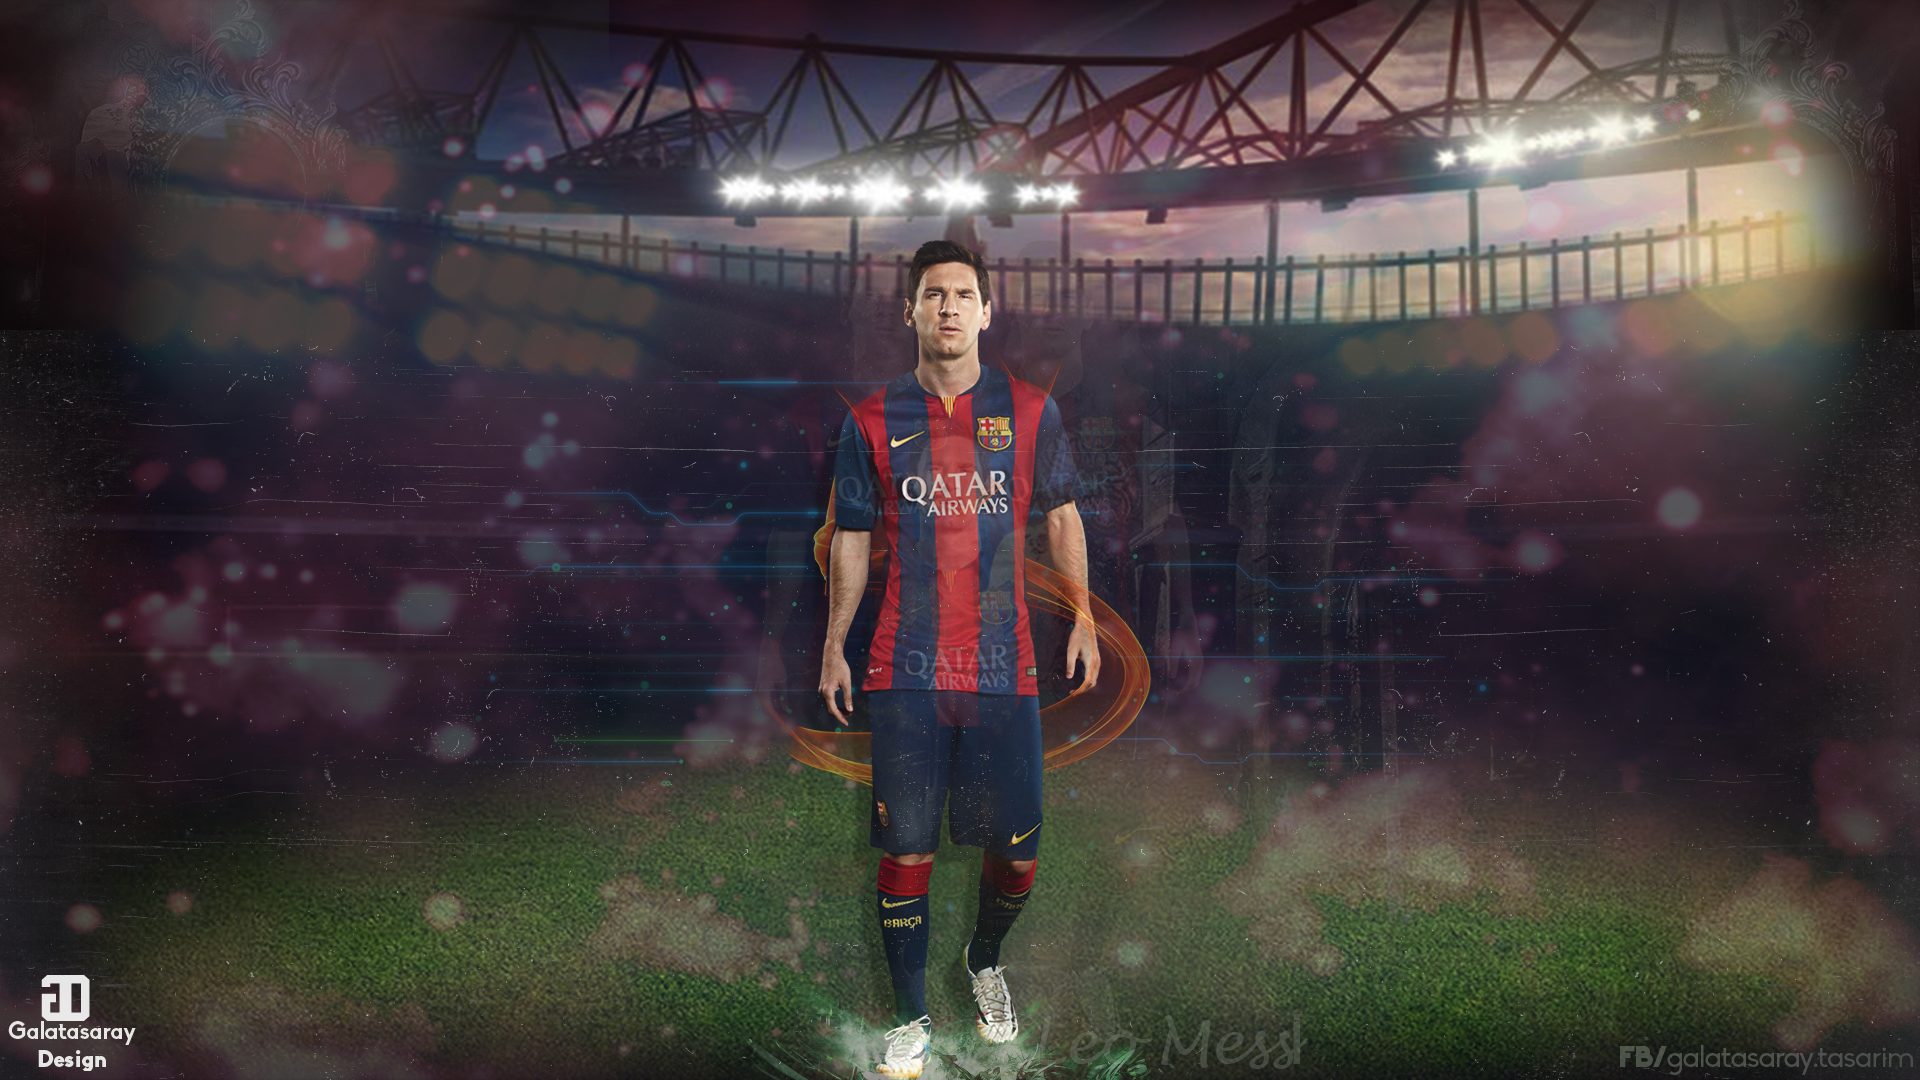 Lionel Messi 2014 2015 Wallpaper by galatasaraydesign 1920x1080